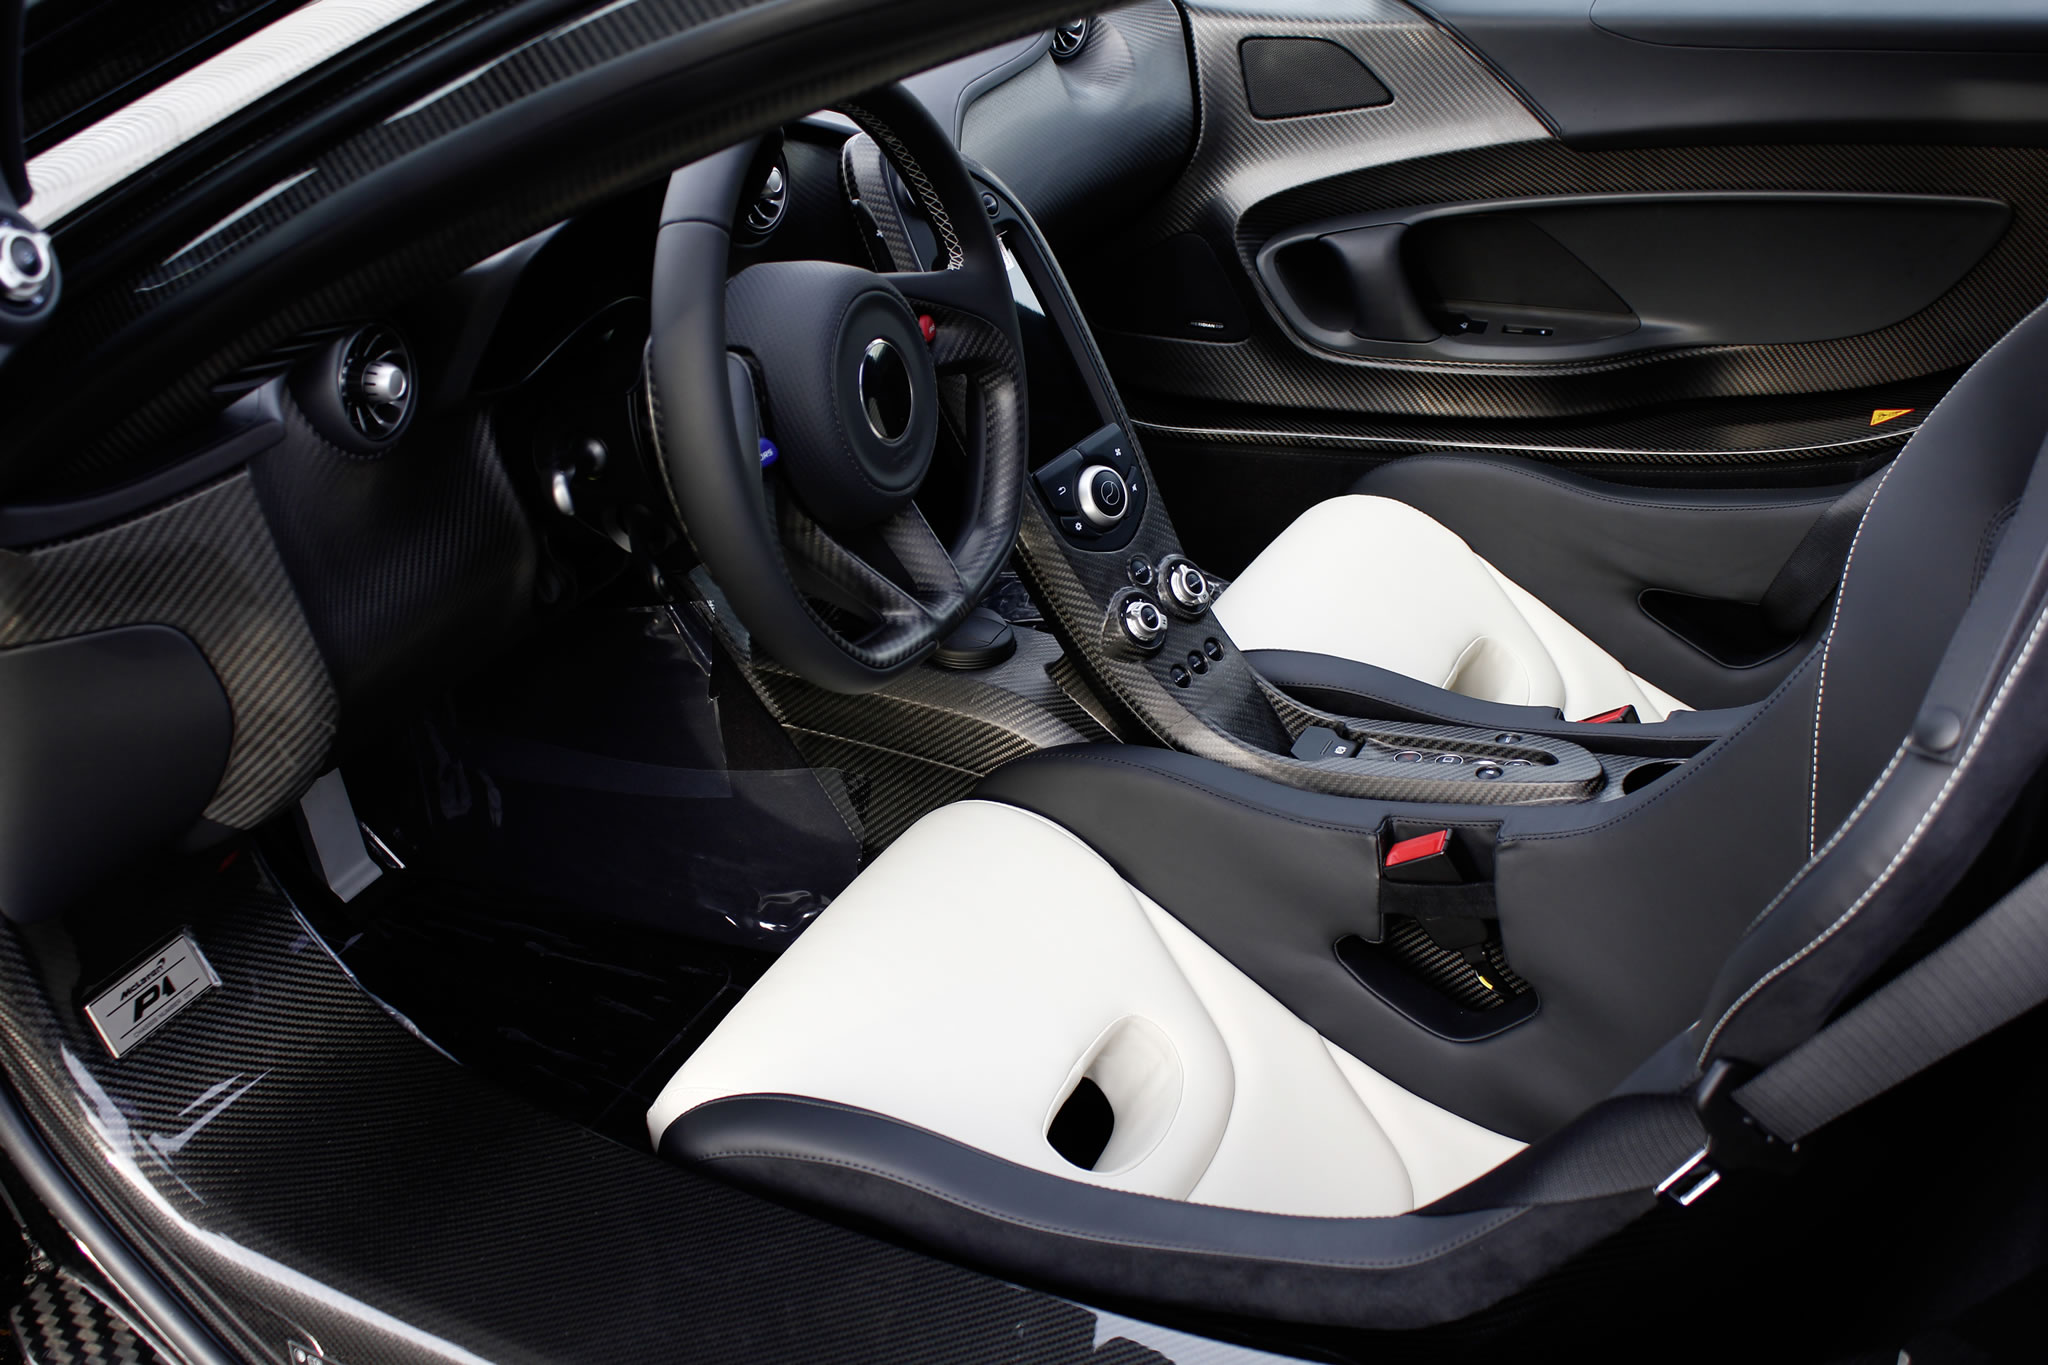 2014 Mclaren P1 By Gemballa Interior Photo Size 2048 X